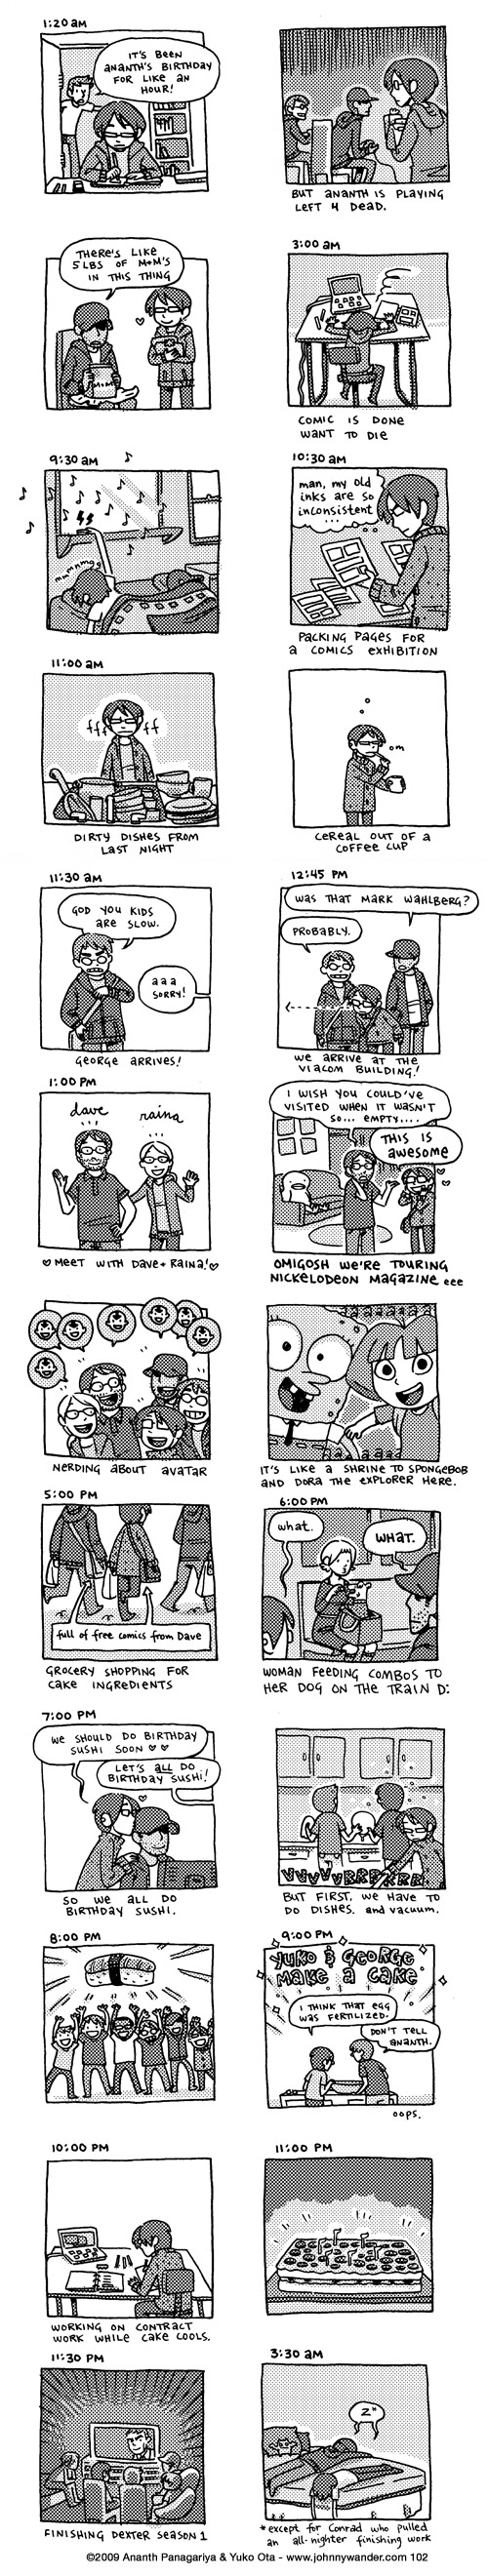 102: hourly comics: october 6th 2009